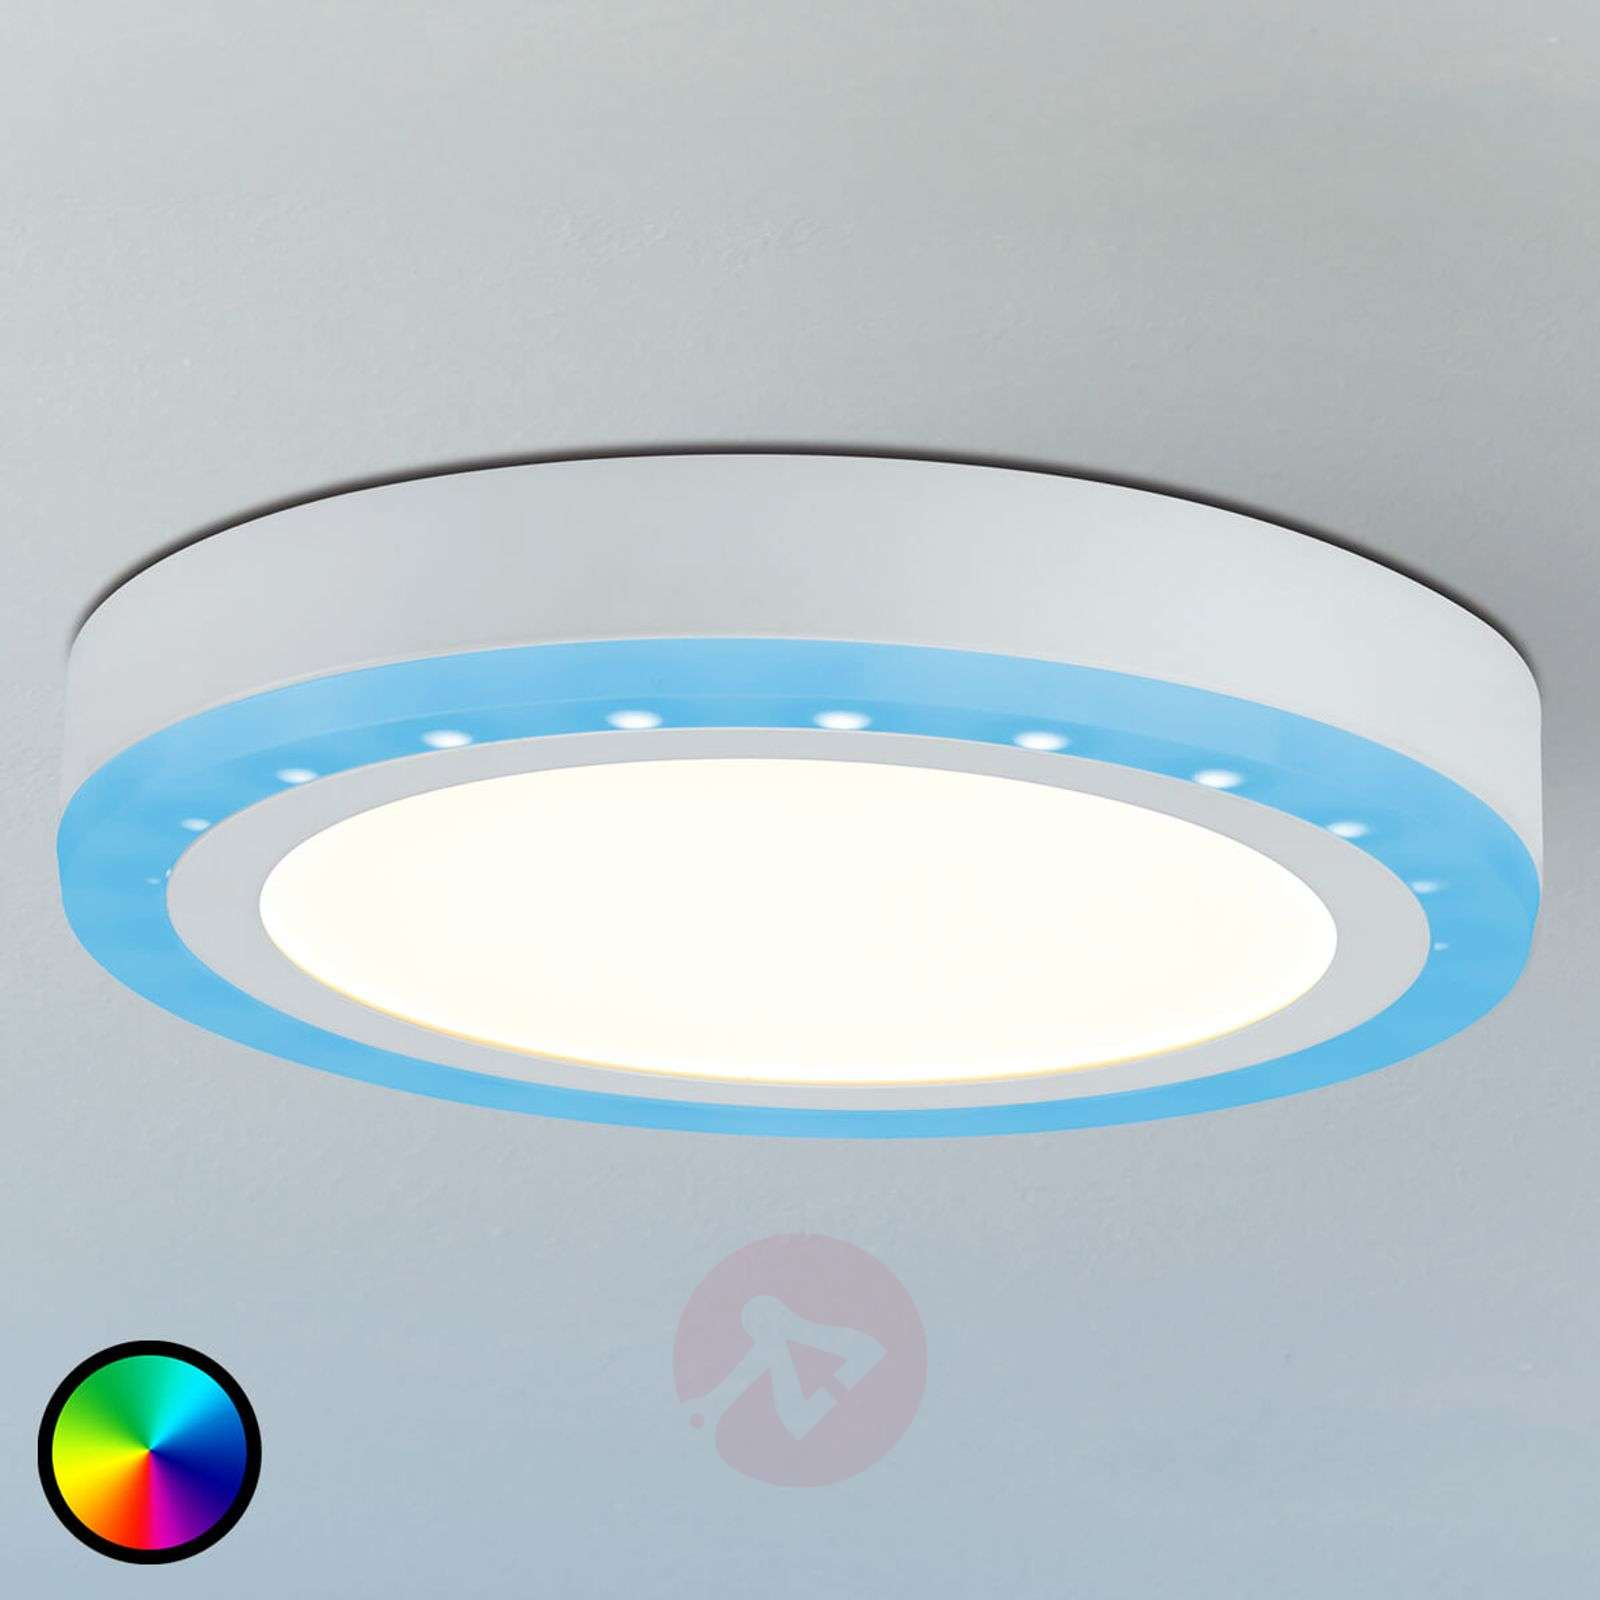 LED ceiling light Sol, RGB colour change function | Lights.co.uk